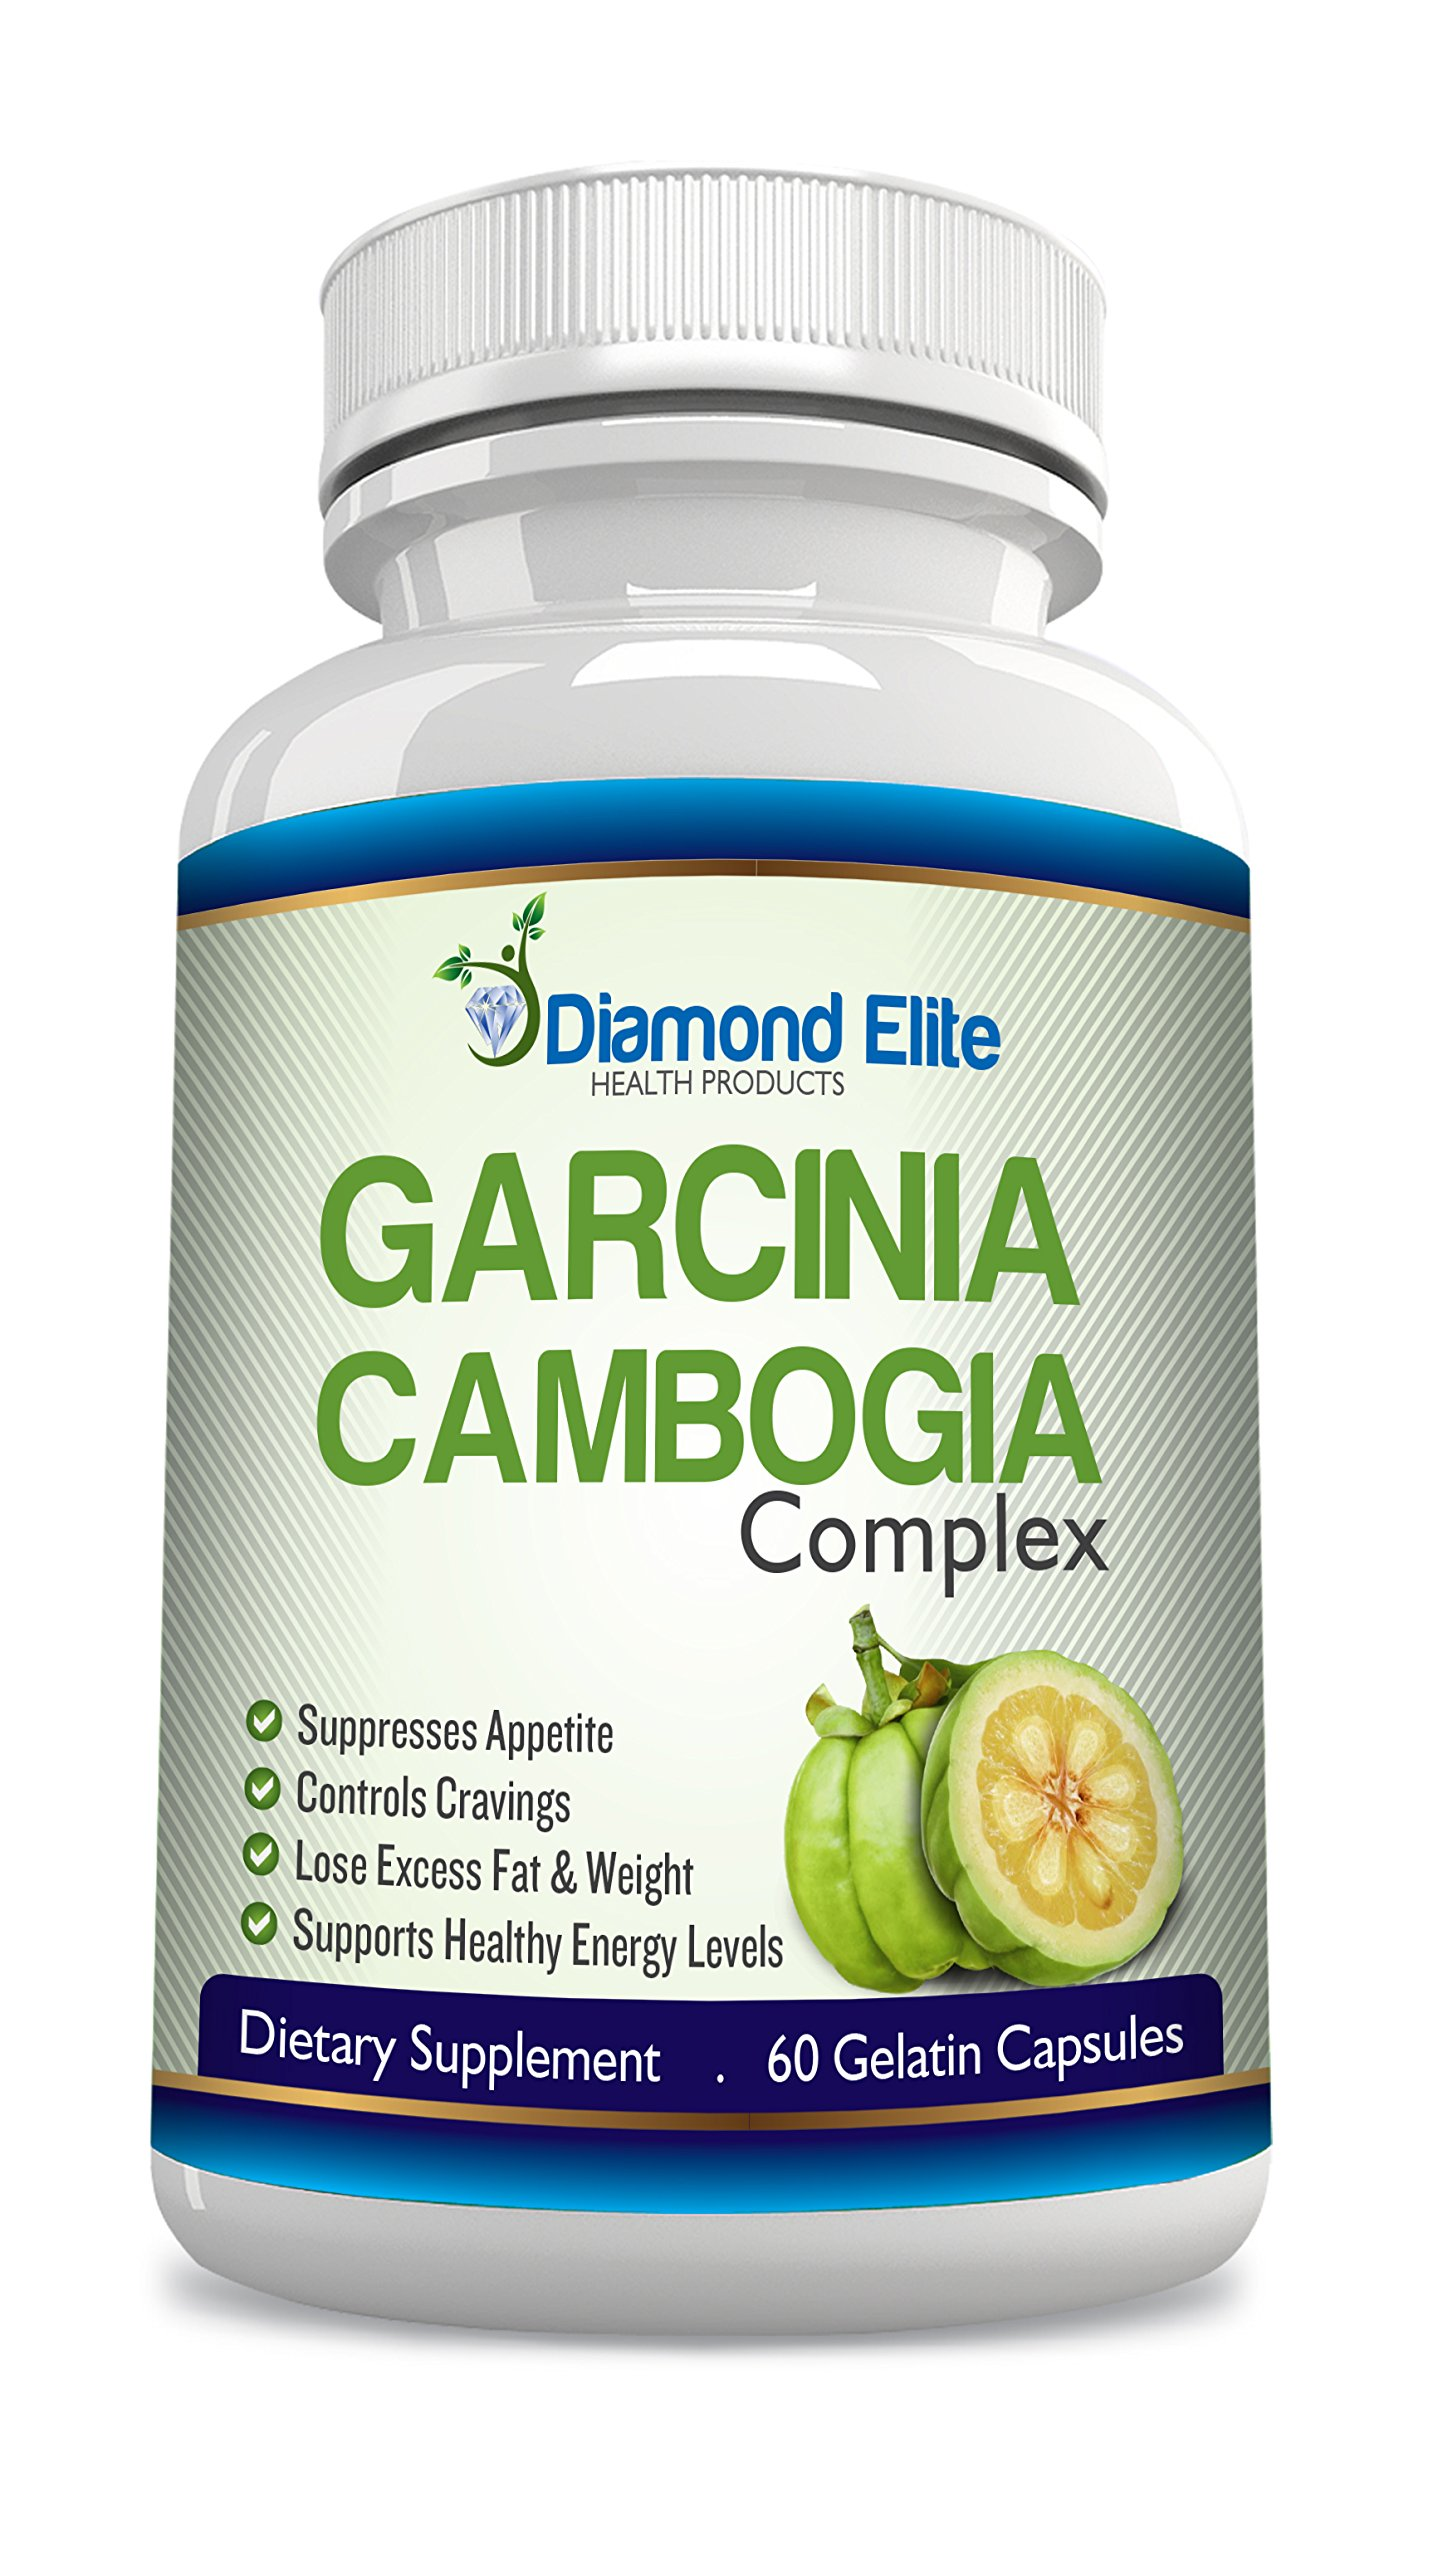 Garcinia Cambogia Complex NATURAL WEIGHT LOSS SUPPLEMENT - APPETITE SUPPRESANT for FAST WEIGHT LOSS! - 100% MONEY BACK GUARANTEE!